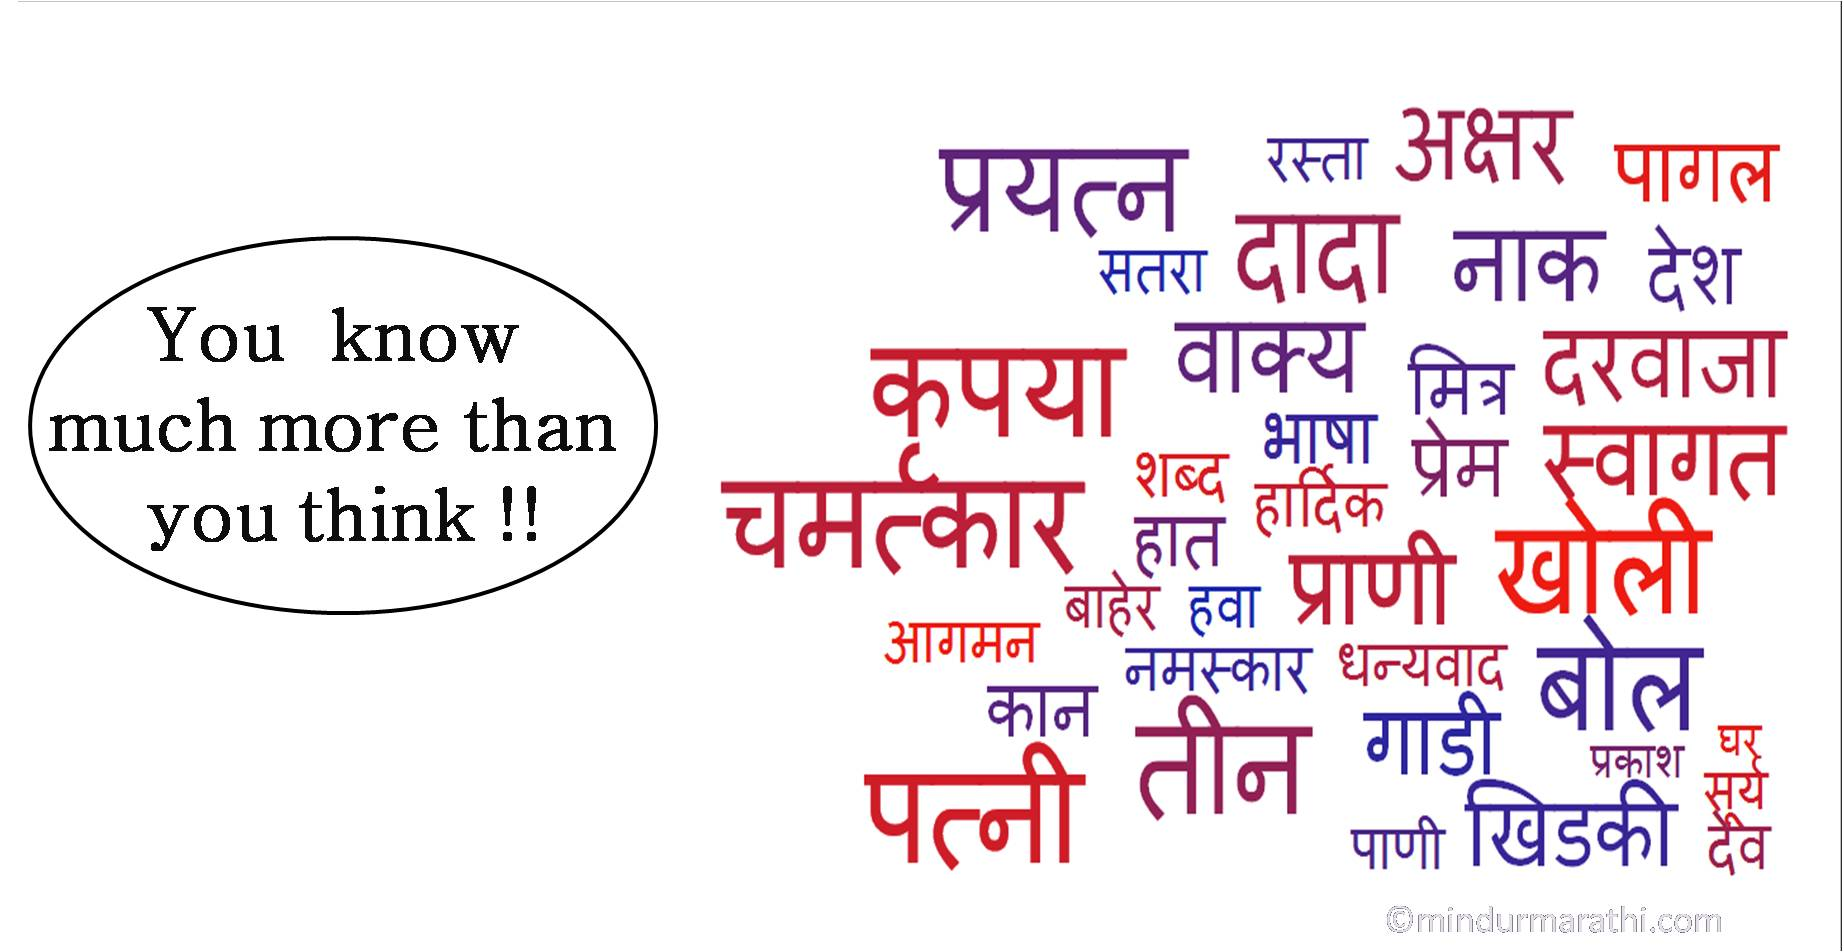 Learn And Speak Marathi Online For Free In 30 Days Learn Marathi